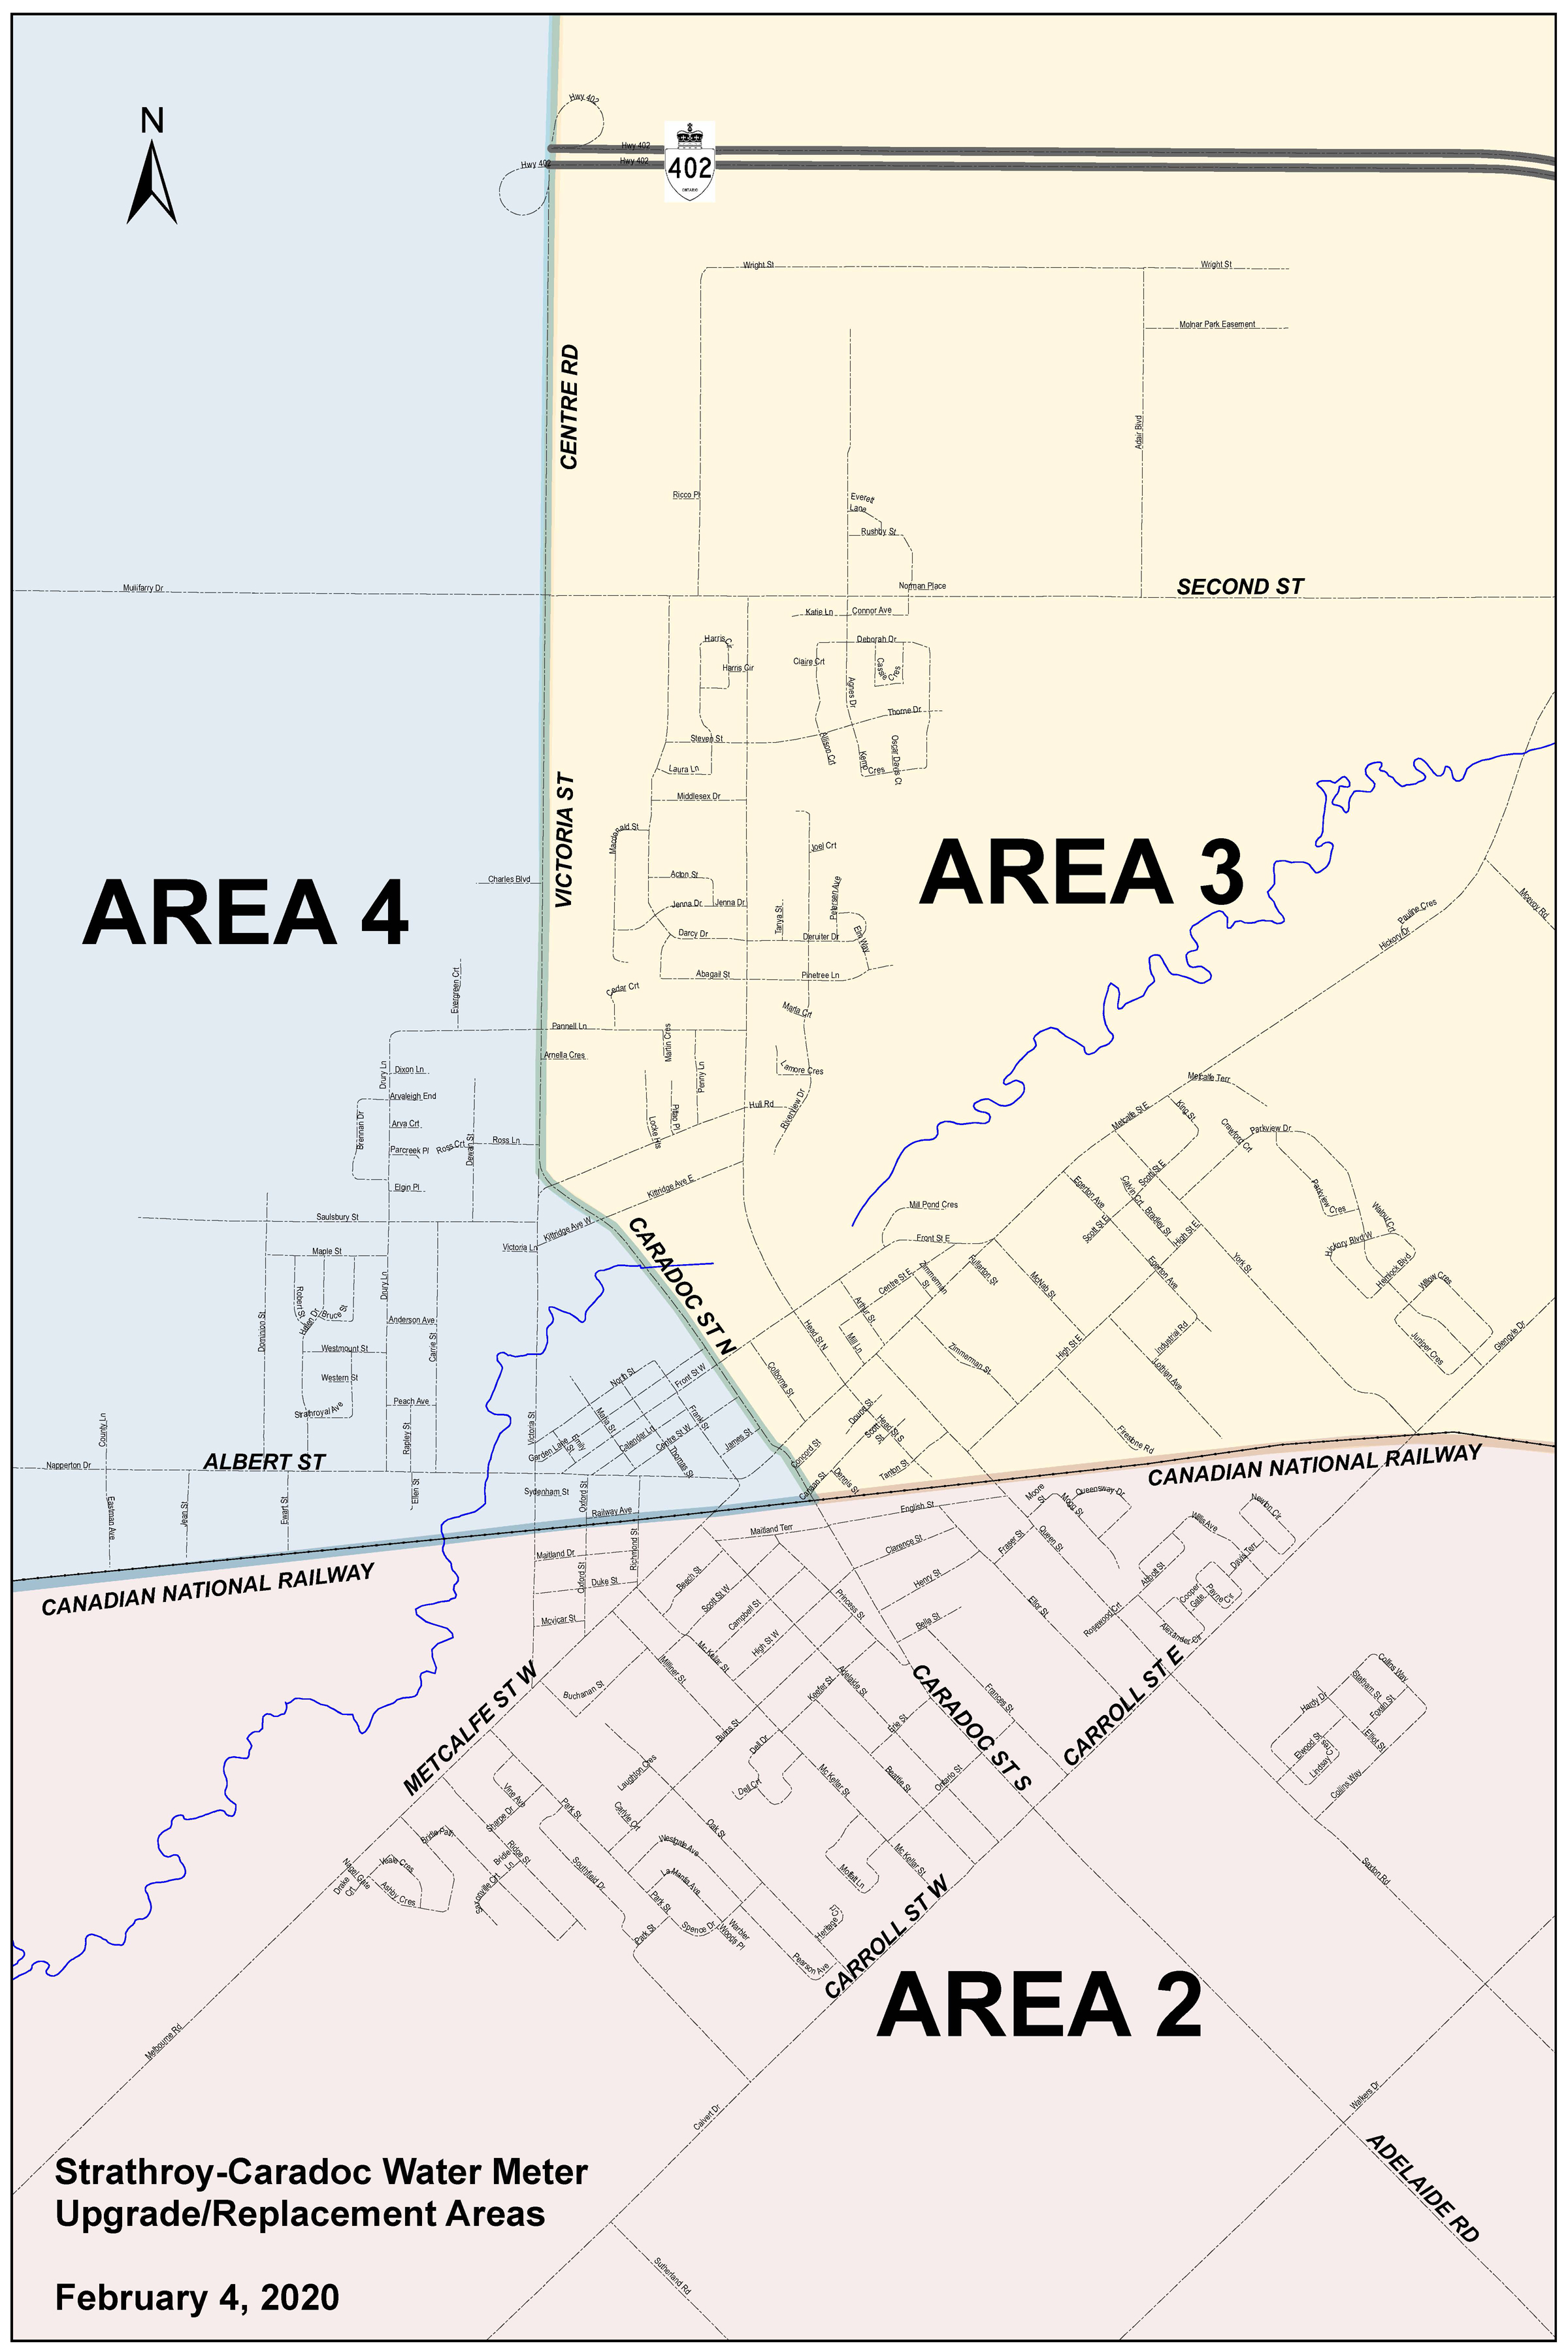 Areas 2-4